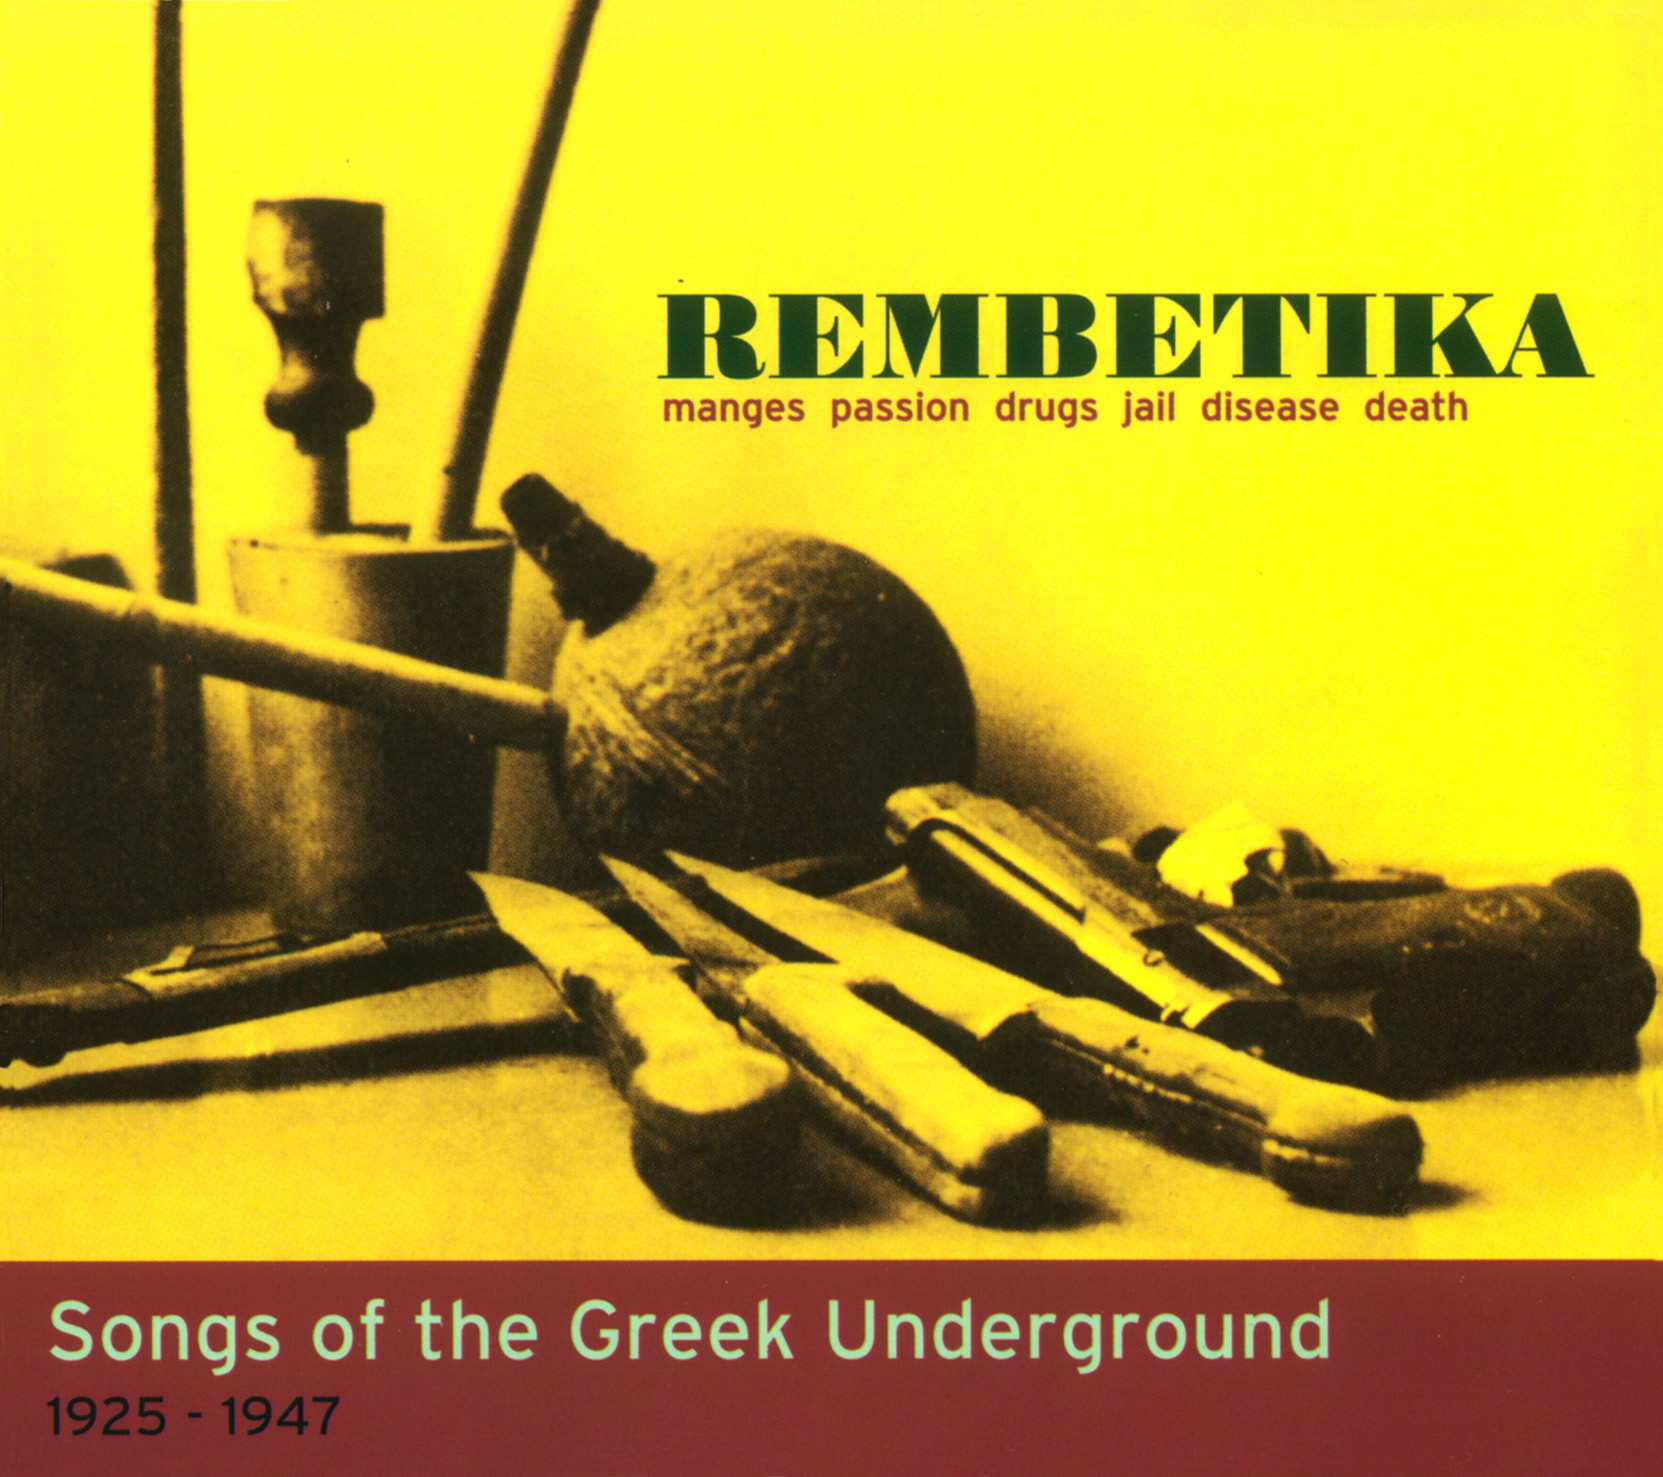 Rembetika - Manges Passion Drugs Jail Desease Death / Songs of the Greek Underground 1925-1947 1